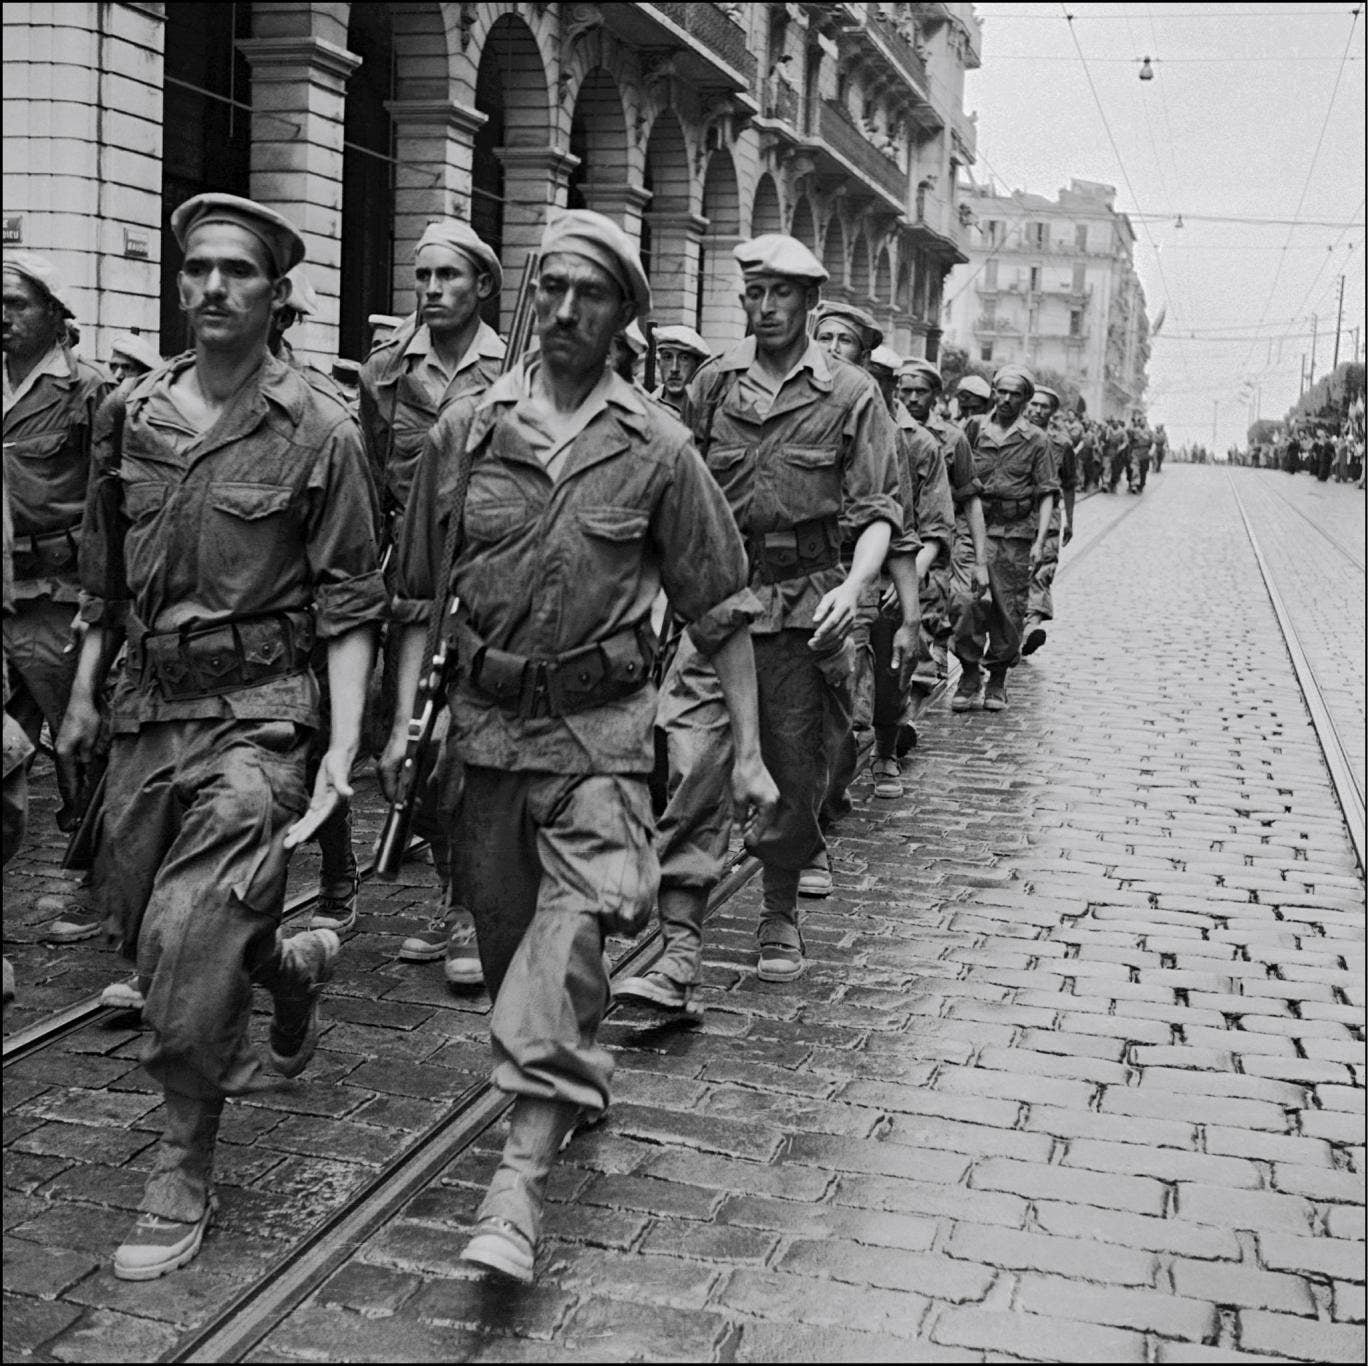 Back from the colonies: Anselme's story of post-combat stress was largely ignored in 1957 France